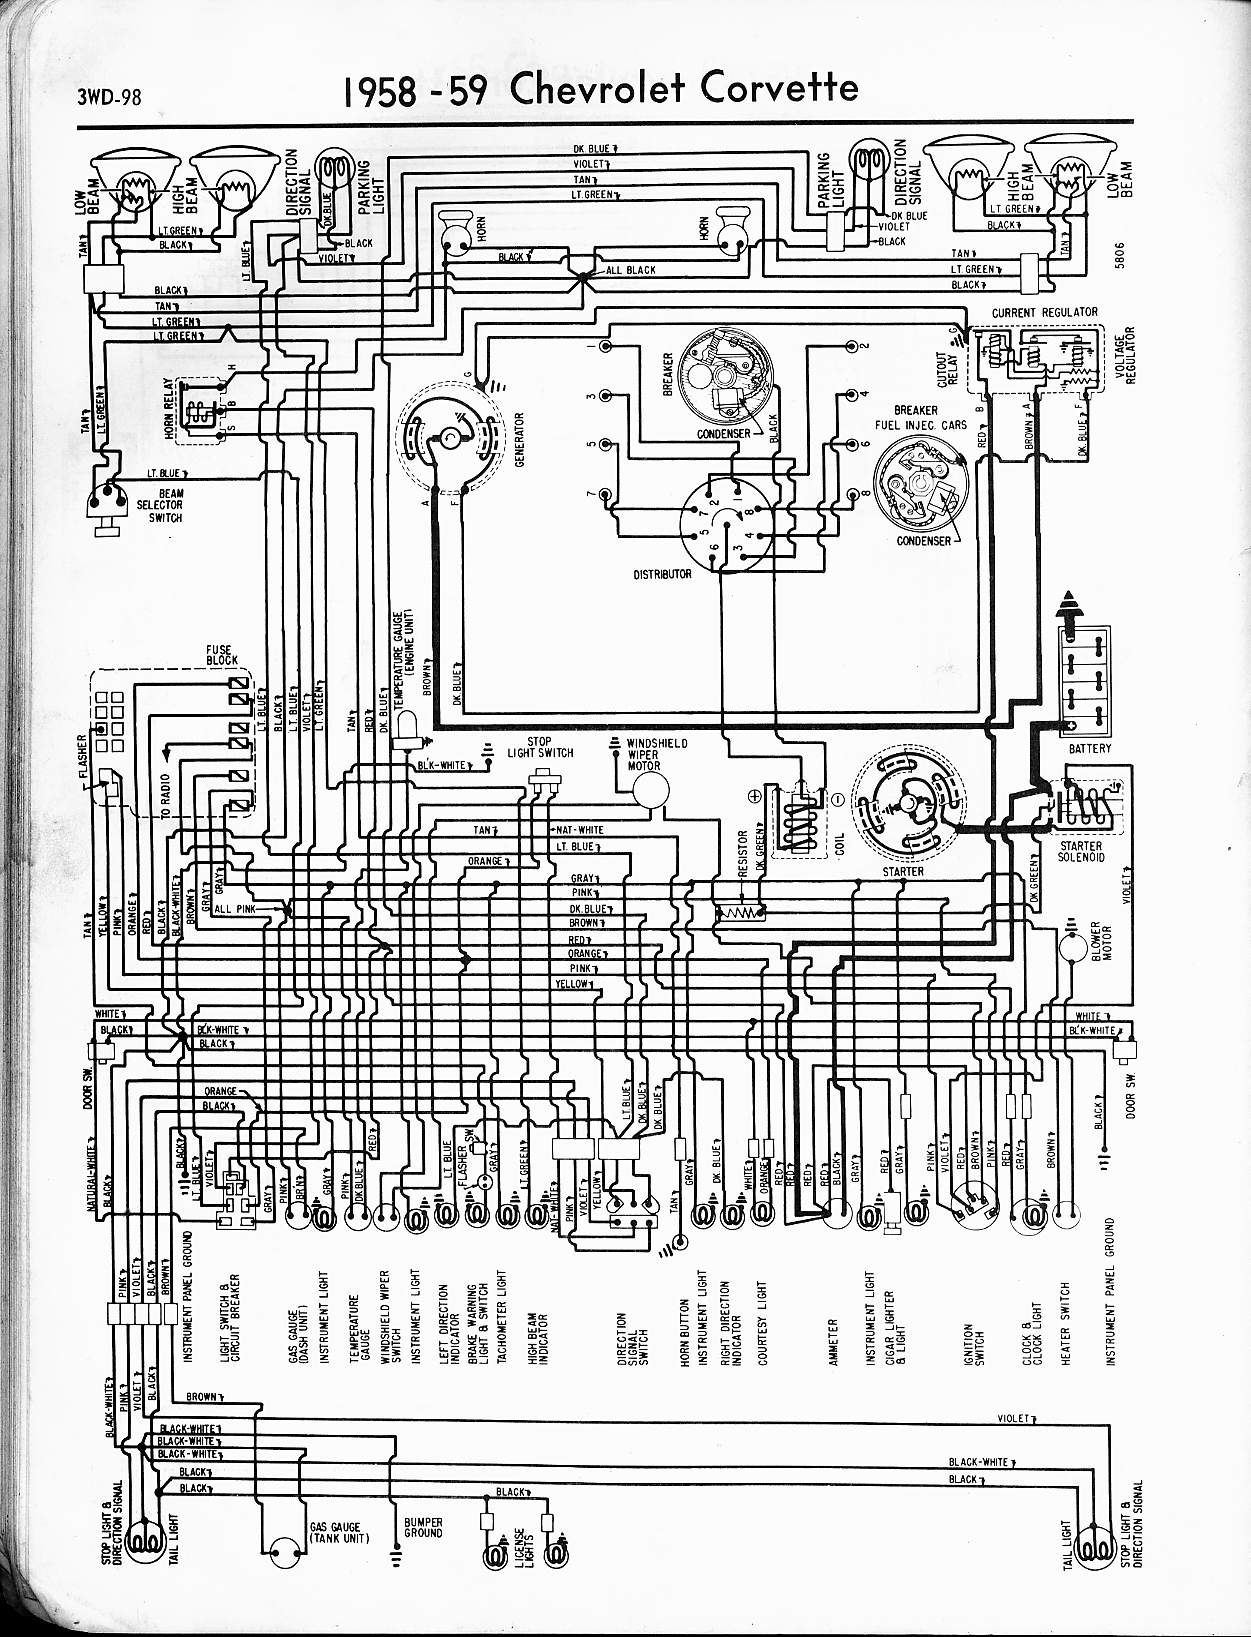 1958 gmc wiring diagram wiring diagram